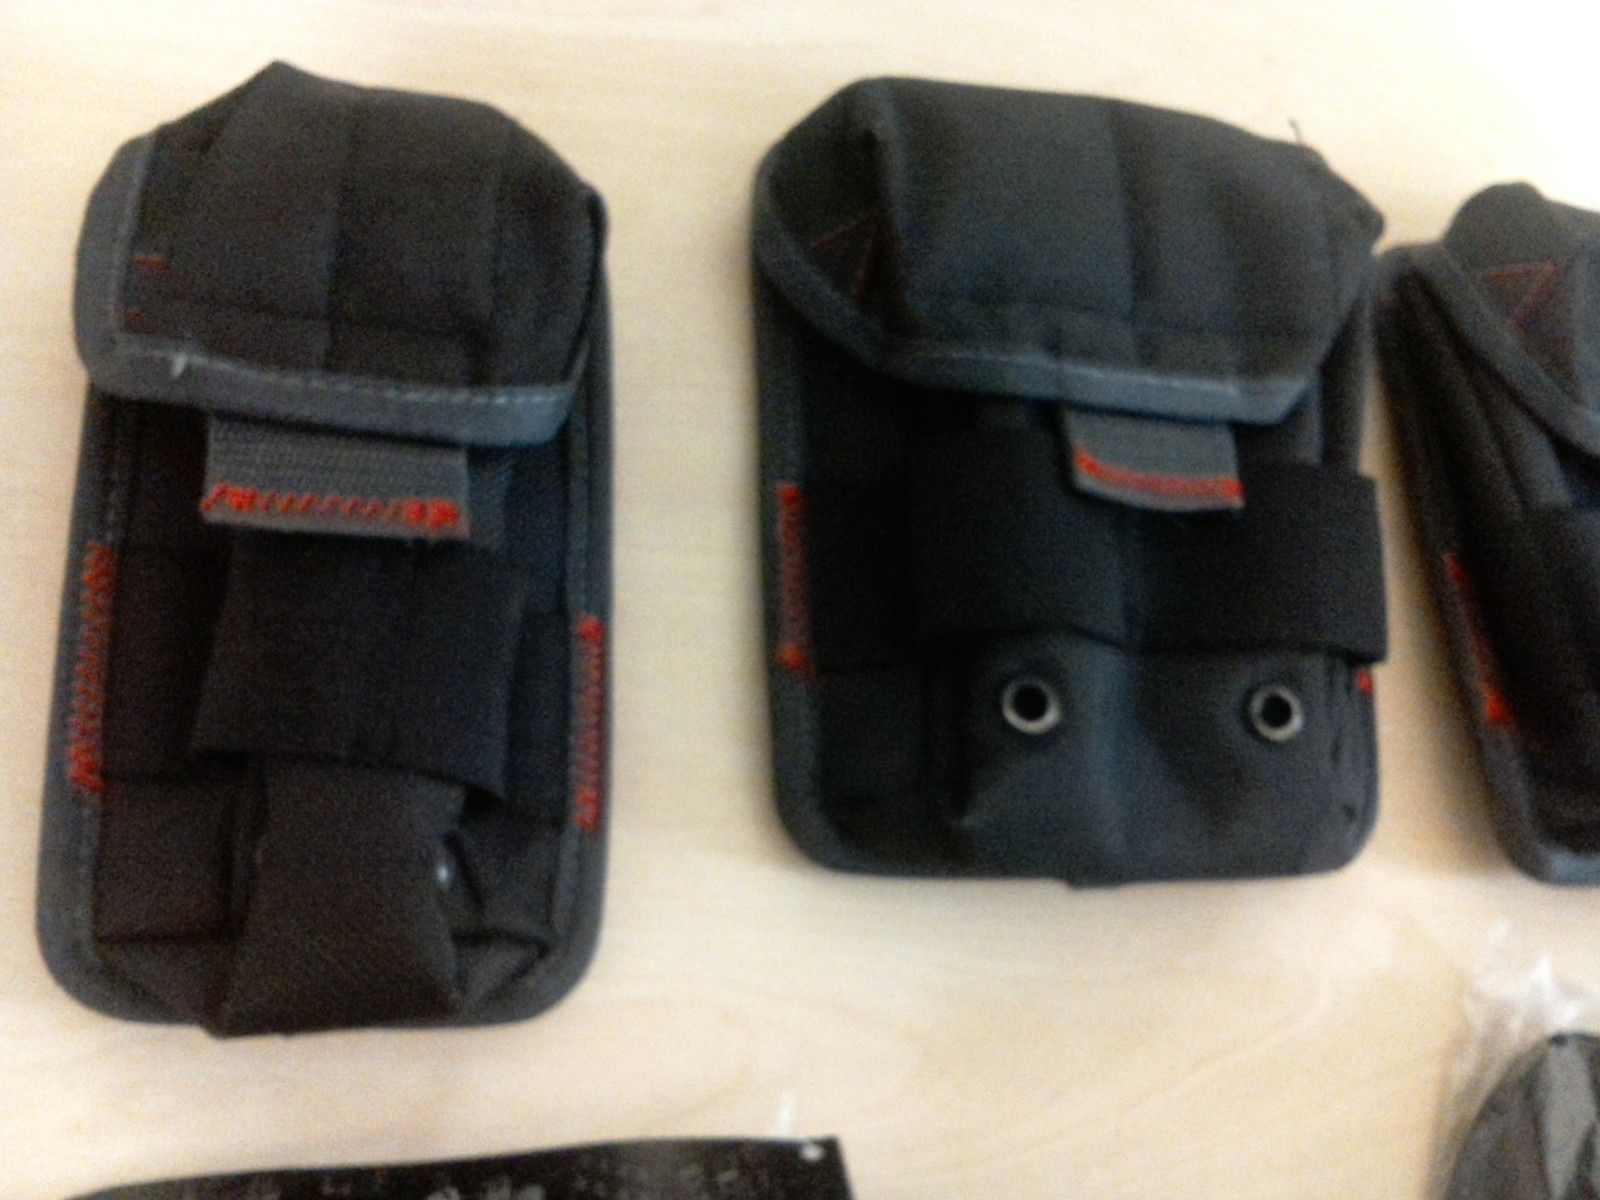 AP tactical laptop case, and 6 pouches - WIN_20150719_220043.JPG